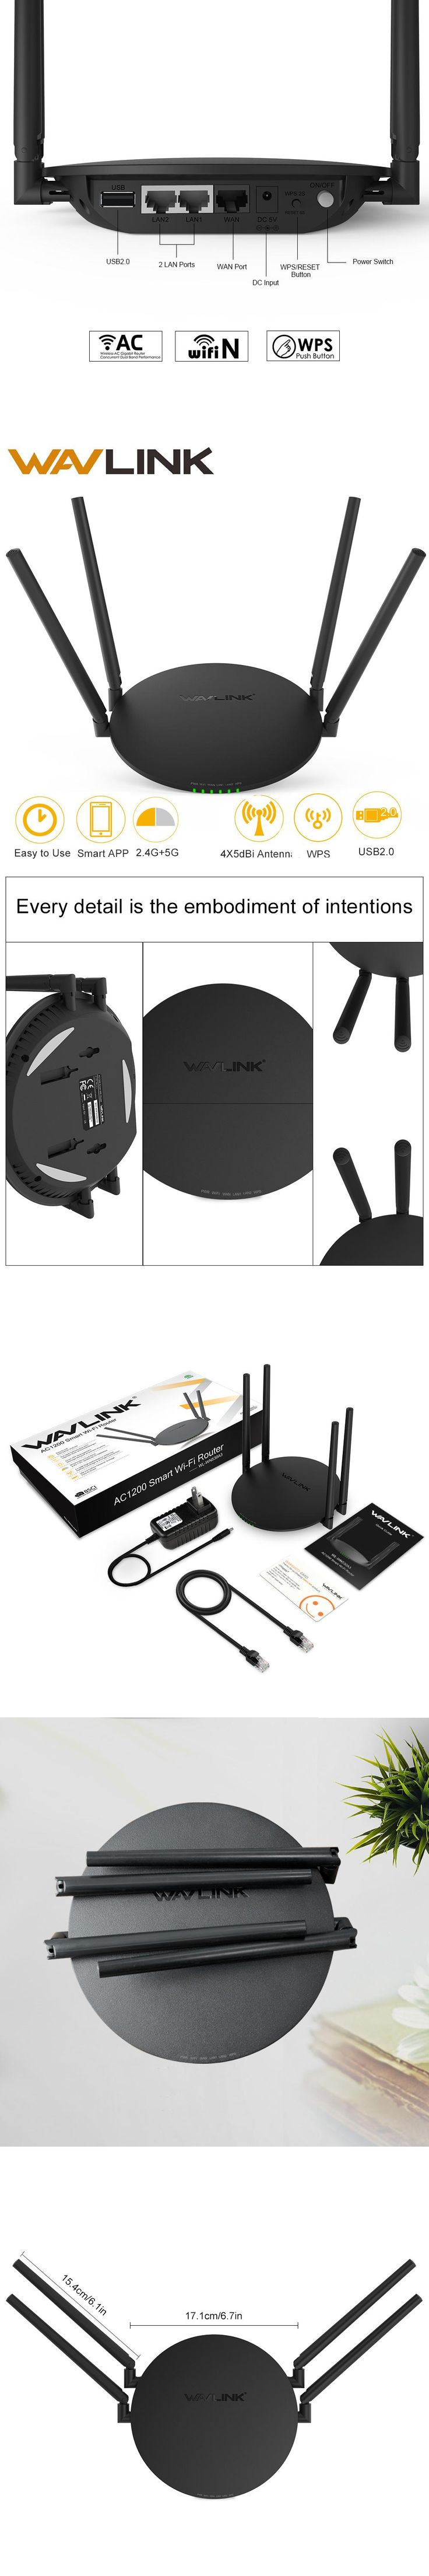 Newes Wavlink AC1200  2.4GHz&5GHz Smart Dual Band Wifi Router AC 5Ghz Wireless Router A802.11ac With 4 external Antennas&USB2.0